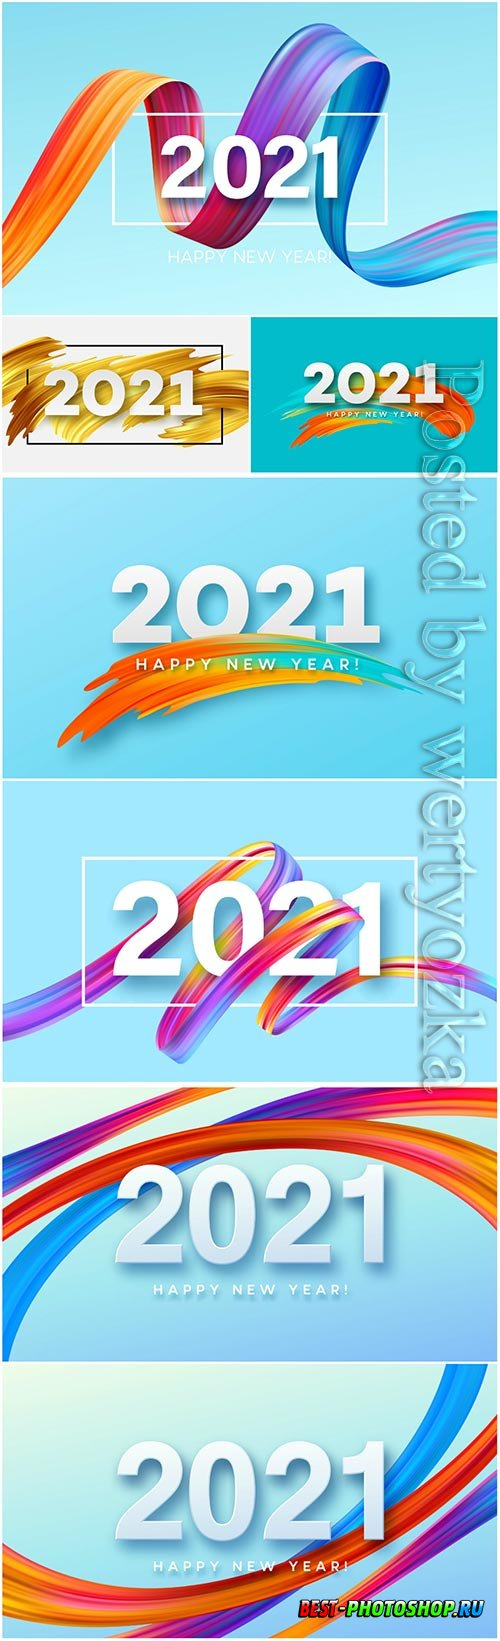 2021 happy new year color flow background